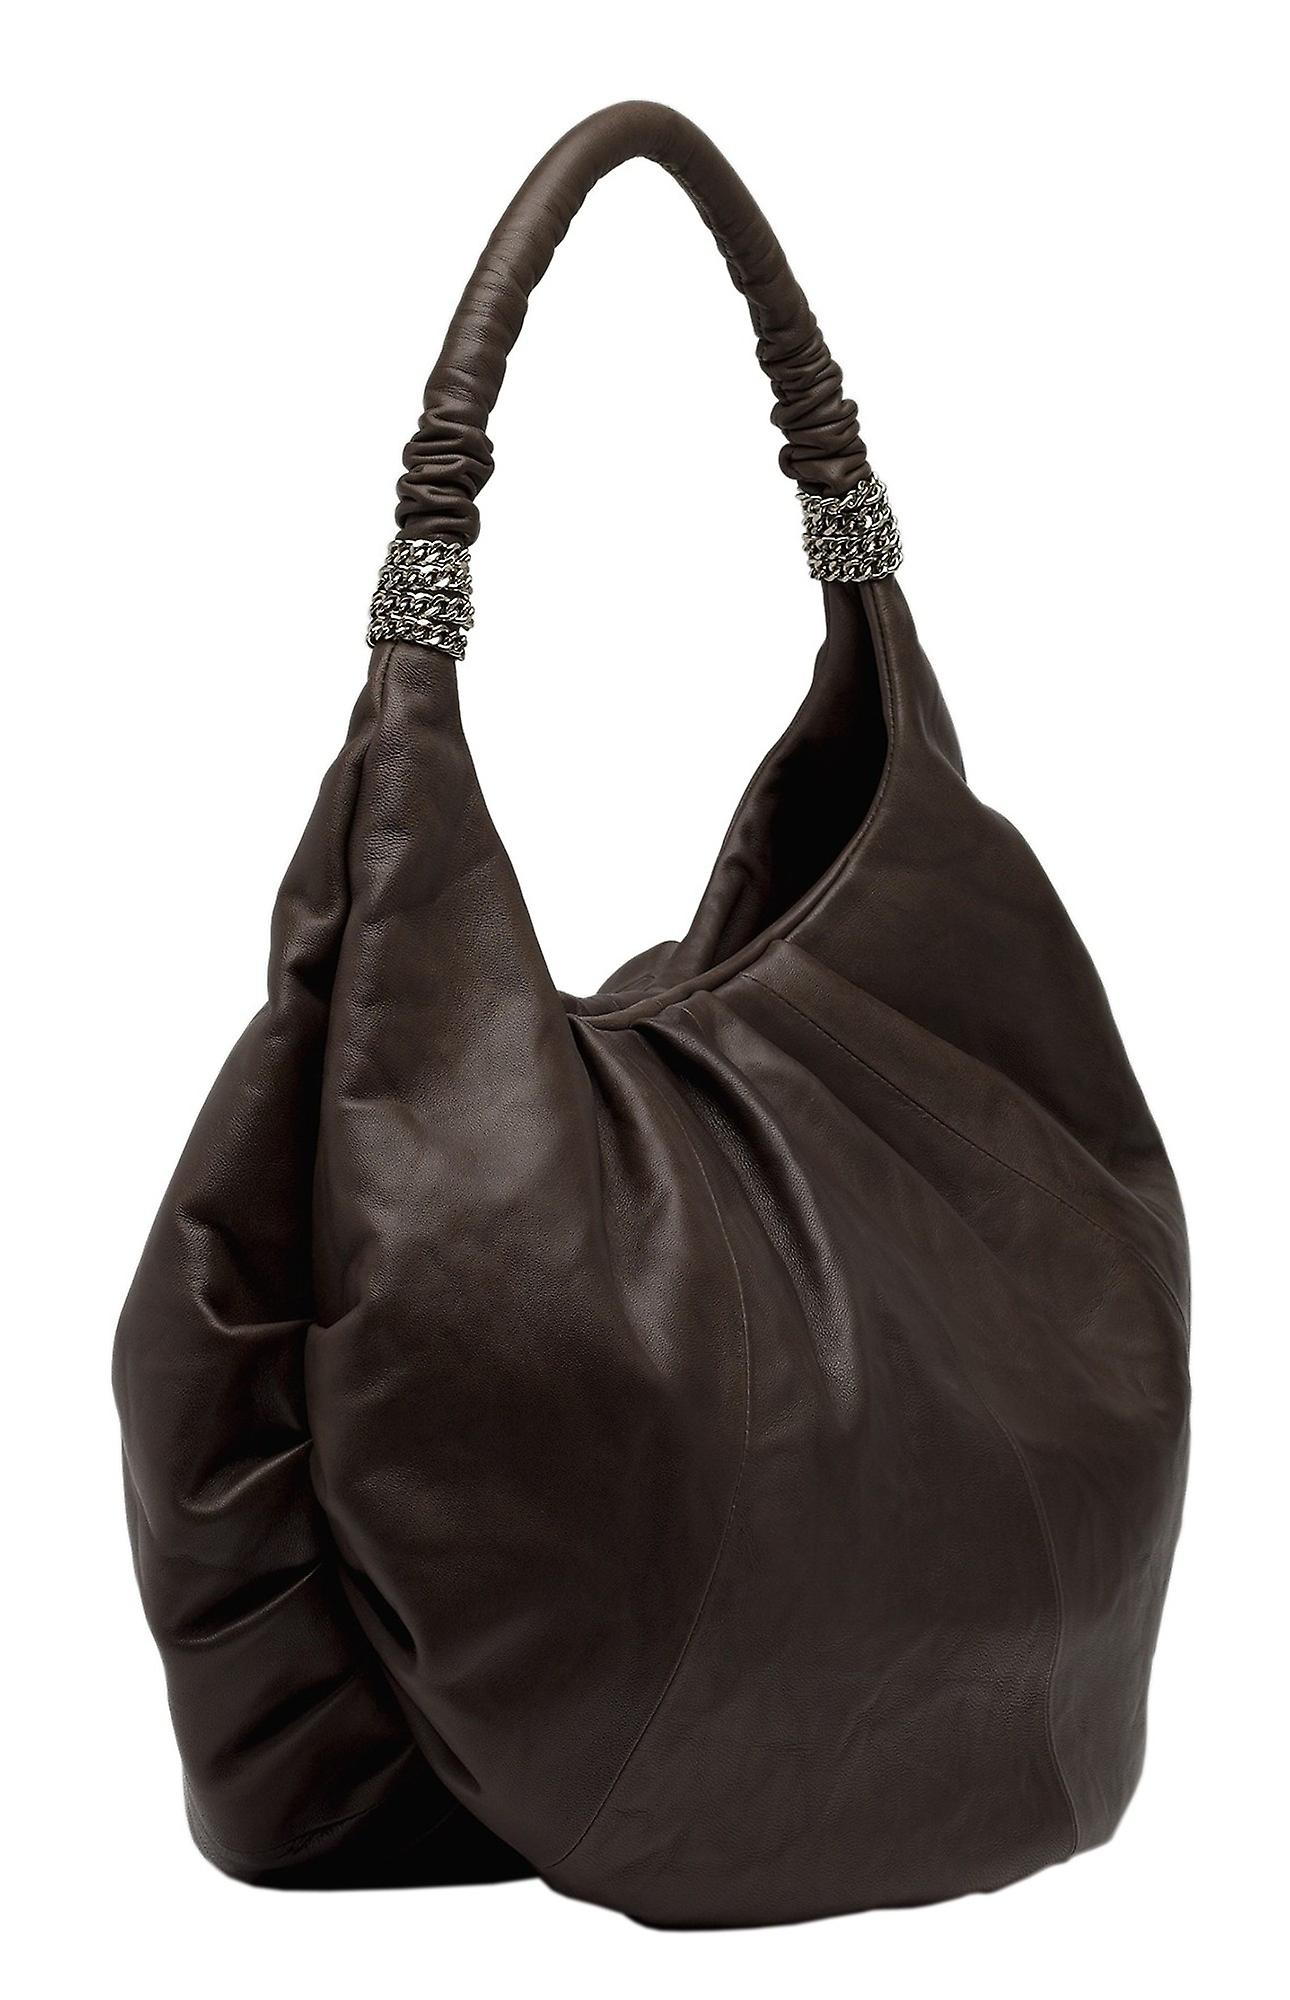 Burgmeister ladies shoulder bag T225-215A leather dark brown